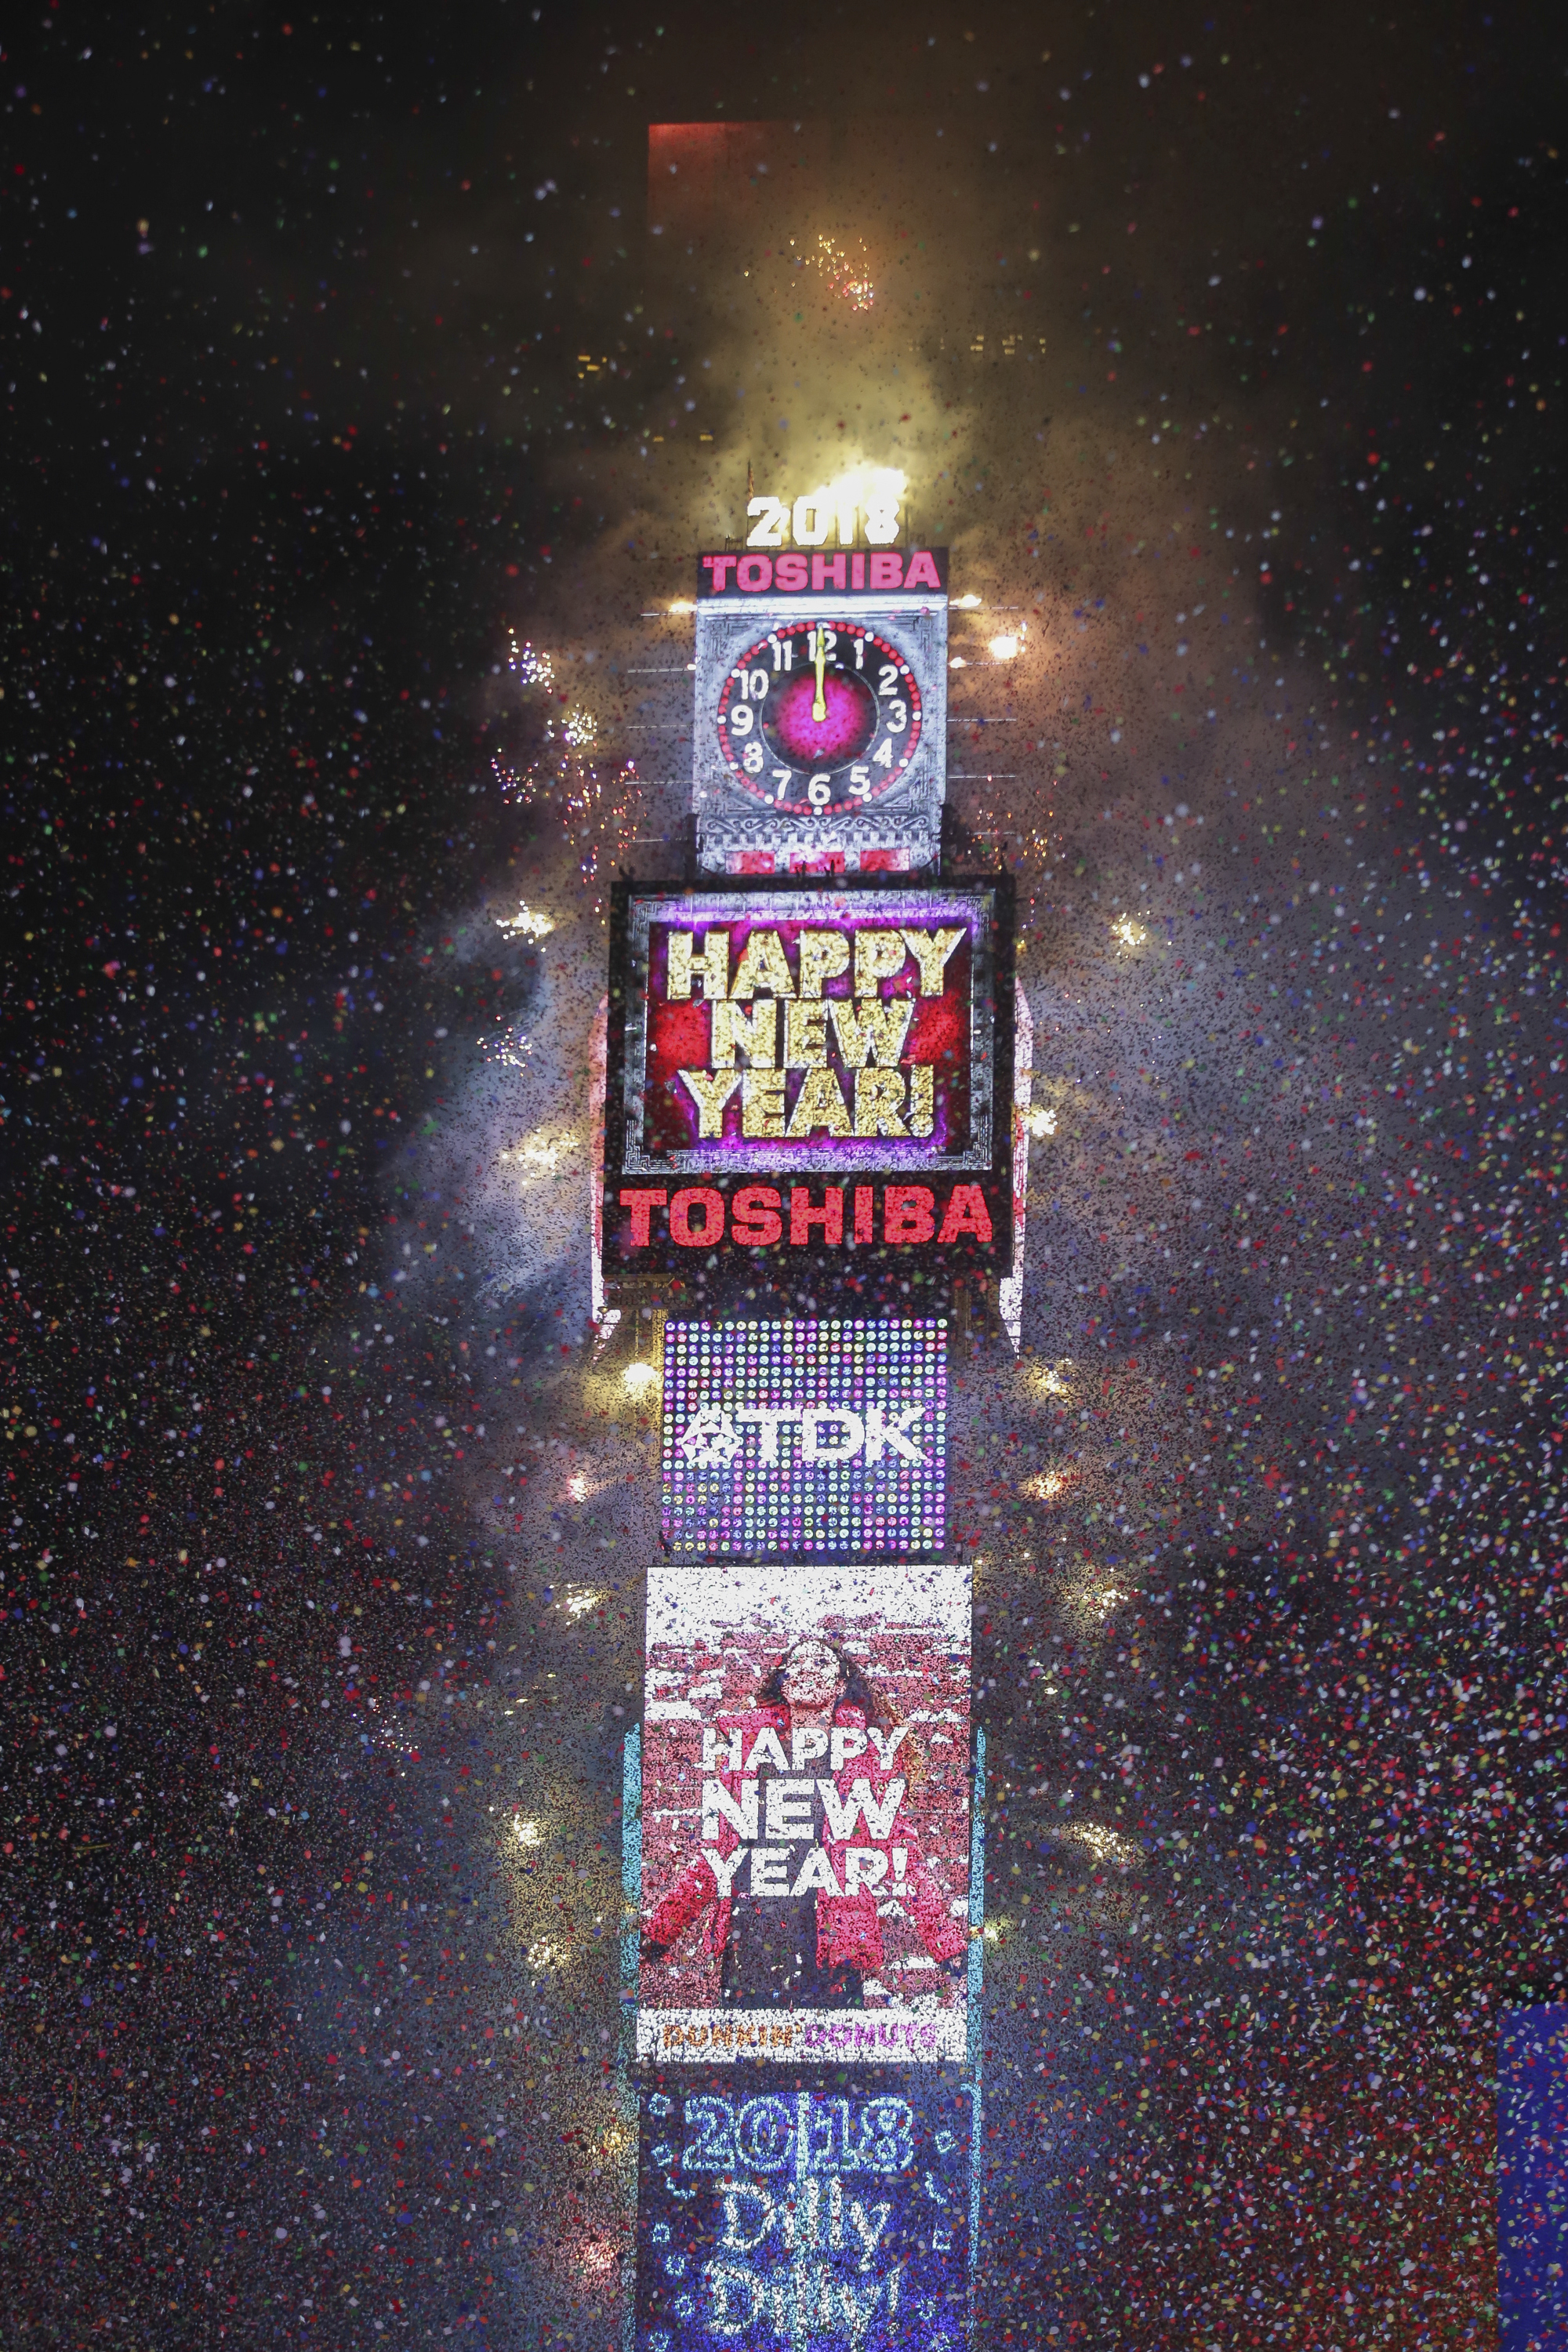 <div class='meta'><div class='origin-logo' data-origin='AP'></div><span class='caption-text' data-credit='Brent N. Clarke/Invision/AP'>The ball drops during the New Year's Eve celebration in Times Square on Sunday, Dec. 31, 2017, in New York. (Photo by Brent N. Clarke/Invision/AP)</span></div>